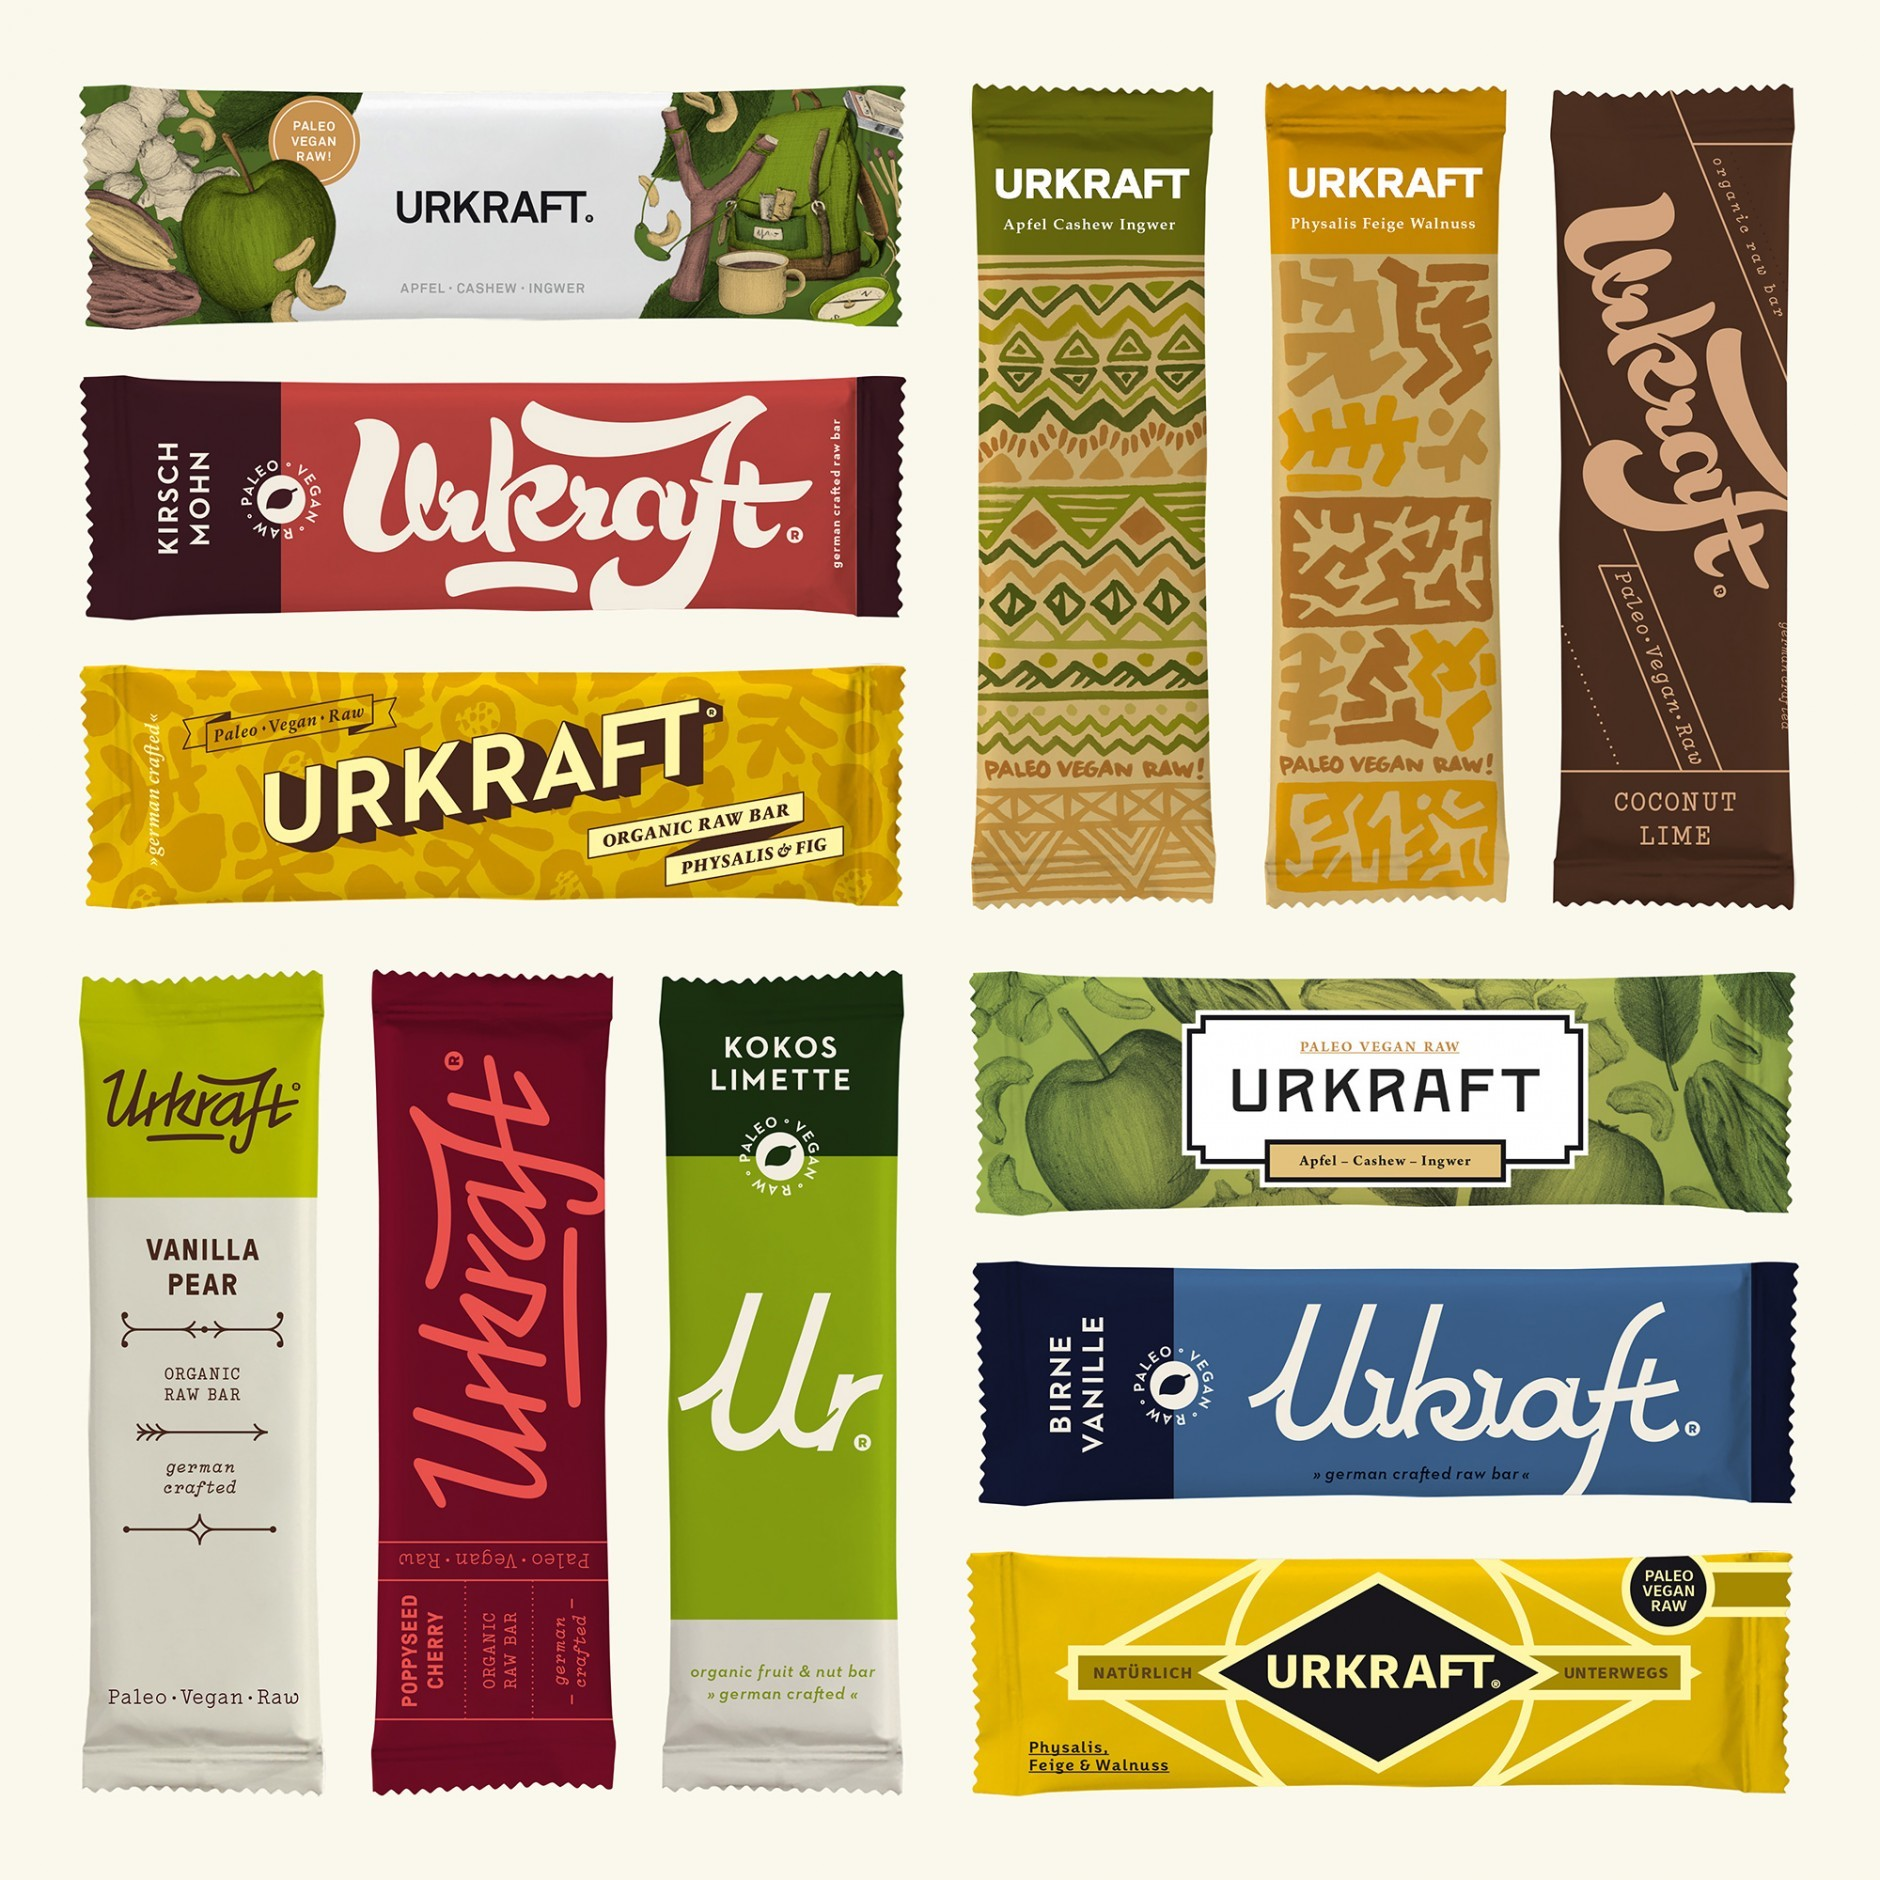 10-philipp-zurmoehle-urkraft-packaging-drafts